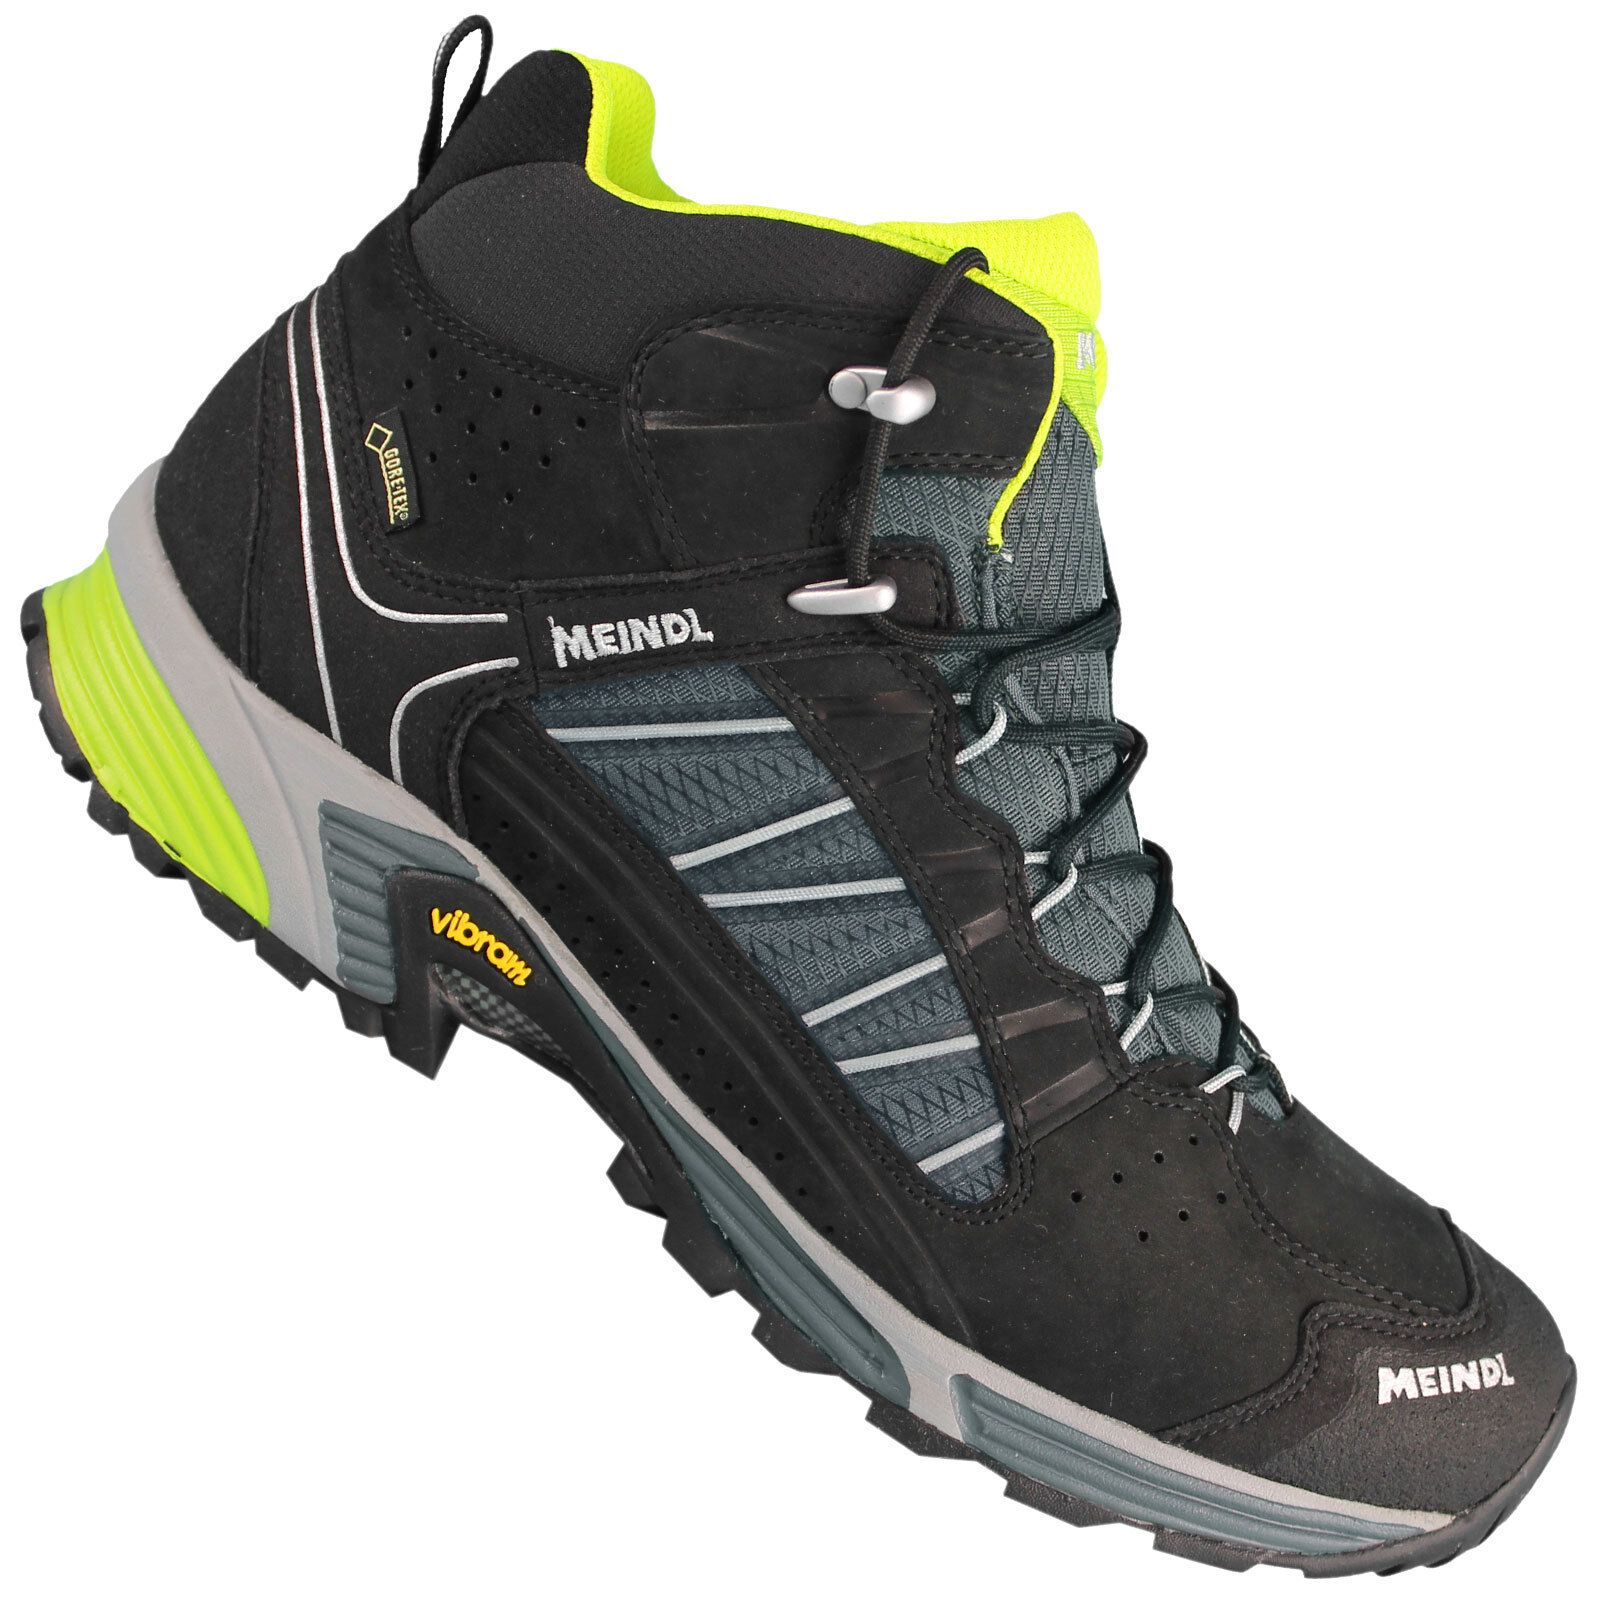 Meindl SX  GTX Men's Hiking Boots Trekking shoes Outdoor shoes Lace-Up shoes New  wholesale price and reliable quality